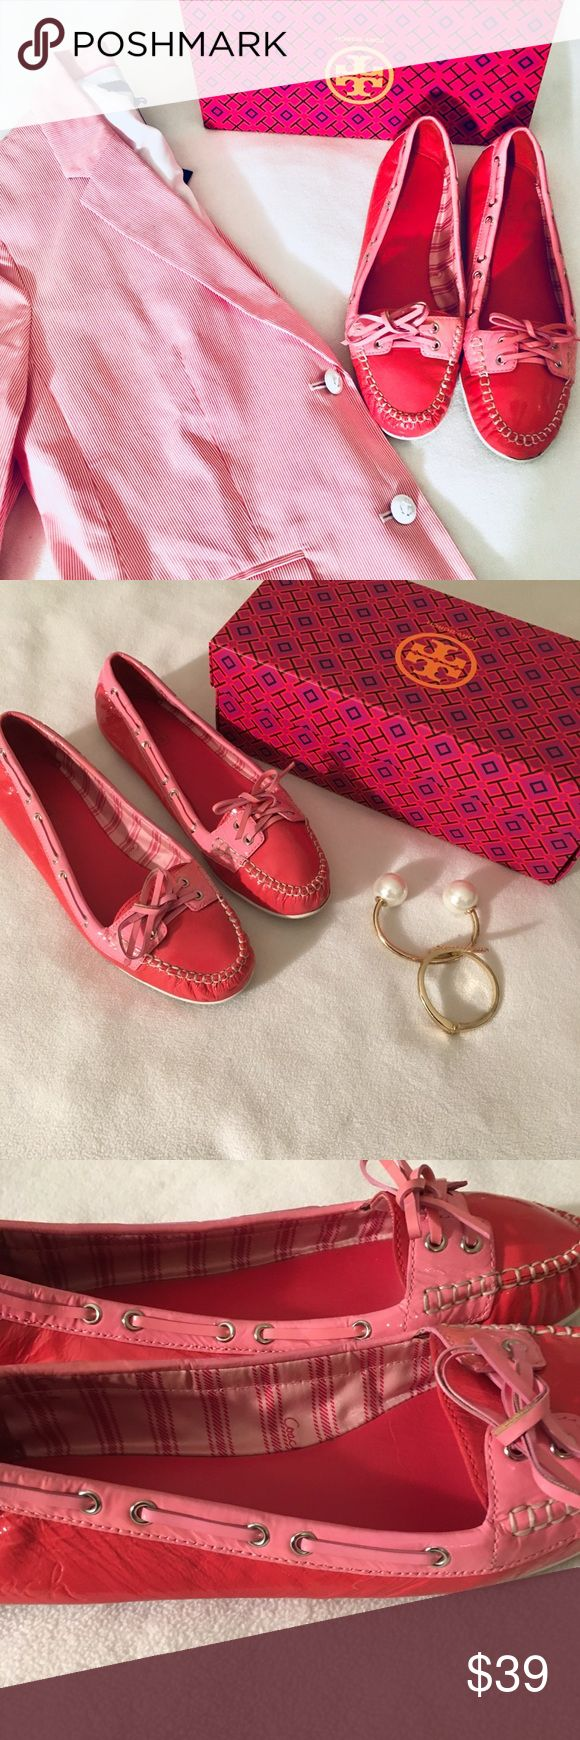 Coach Candy Pink Patent Leather Boat Shoes Loafers Super cute Coach Candy Pink Patent Leather Boat Shoes Loafers In very good condition Coach Shoes Flats & Loafers